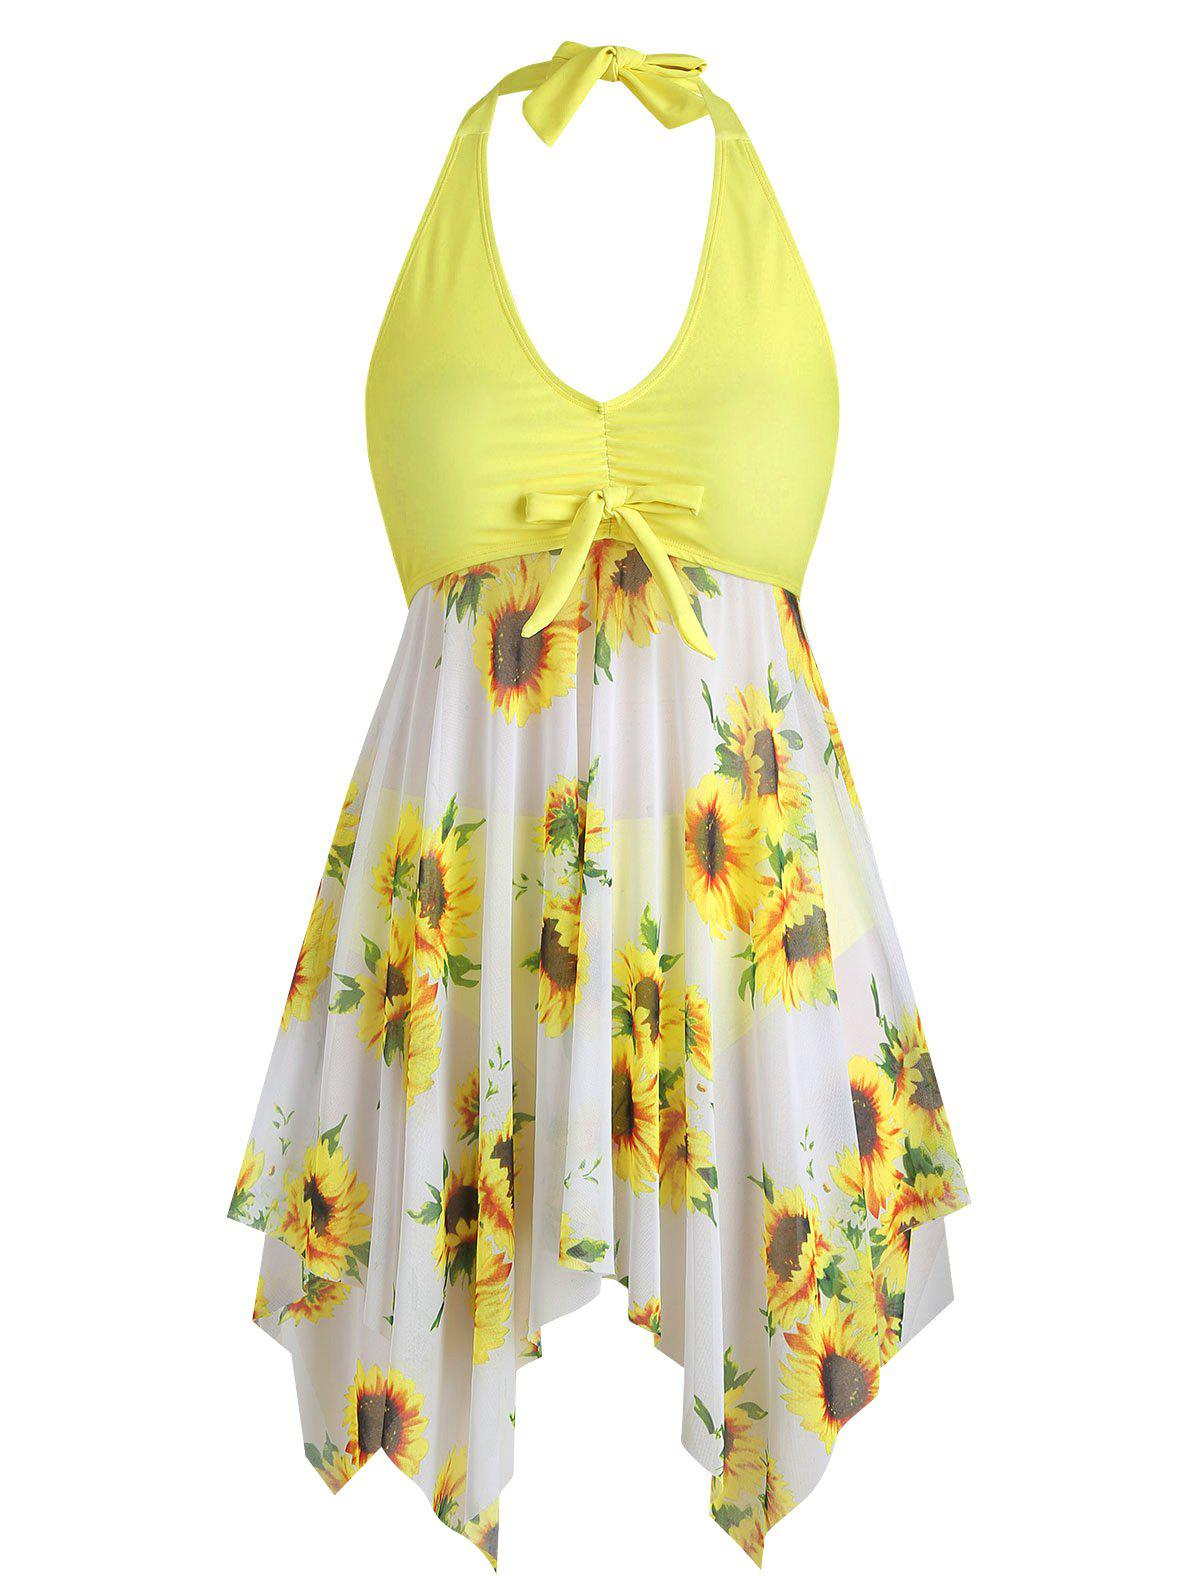 Chic Bowknot Contrast Sunflower Plus Size Tankini Set